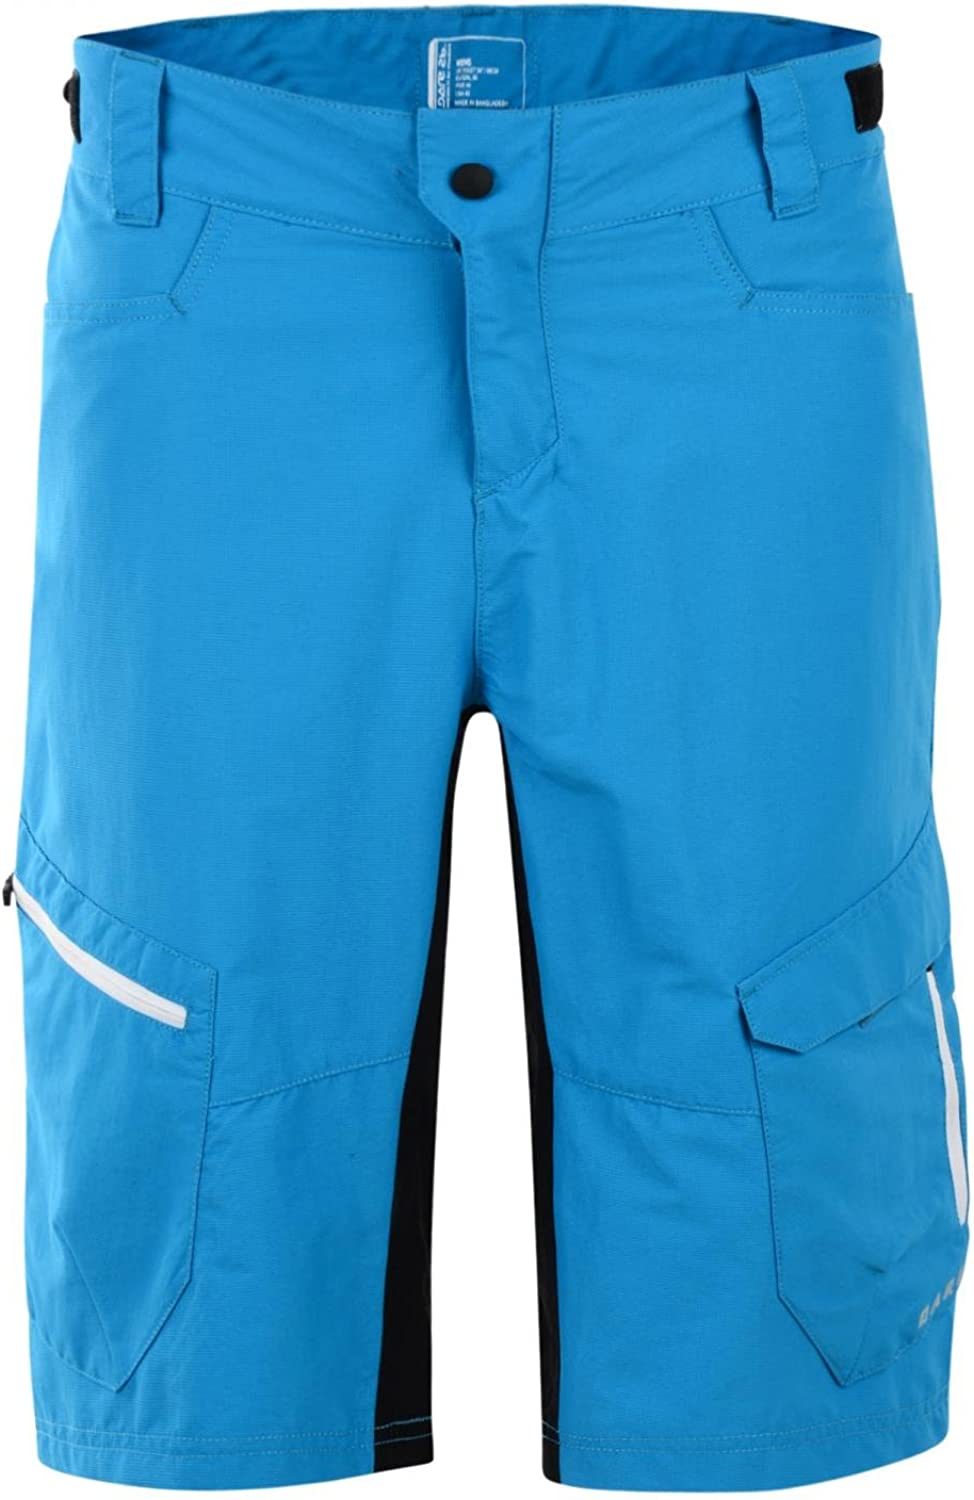 Dare 2b Mens Adhere Congreenible Cycling Shorts Bike Stretch Water Repellent